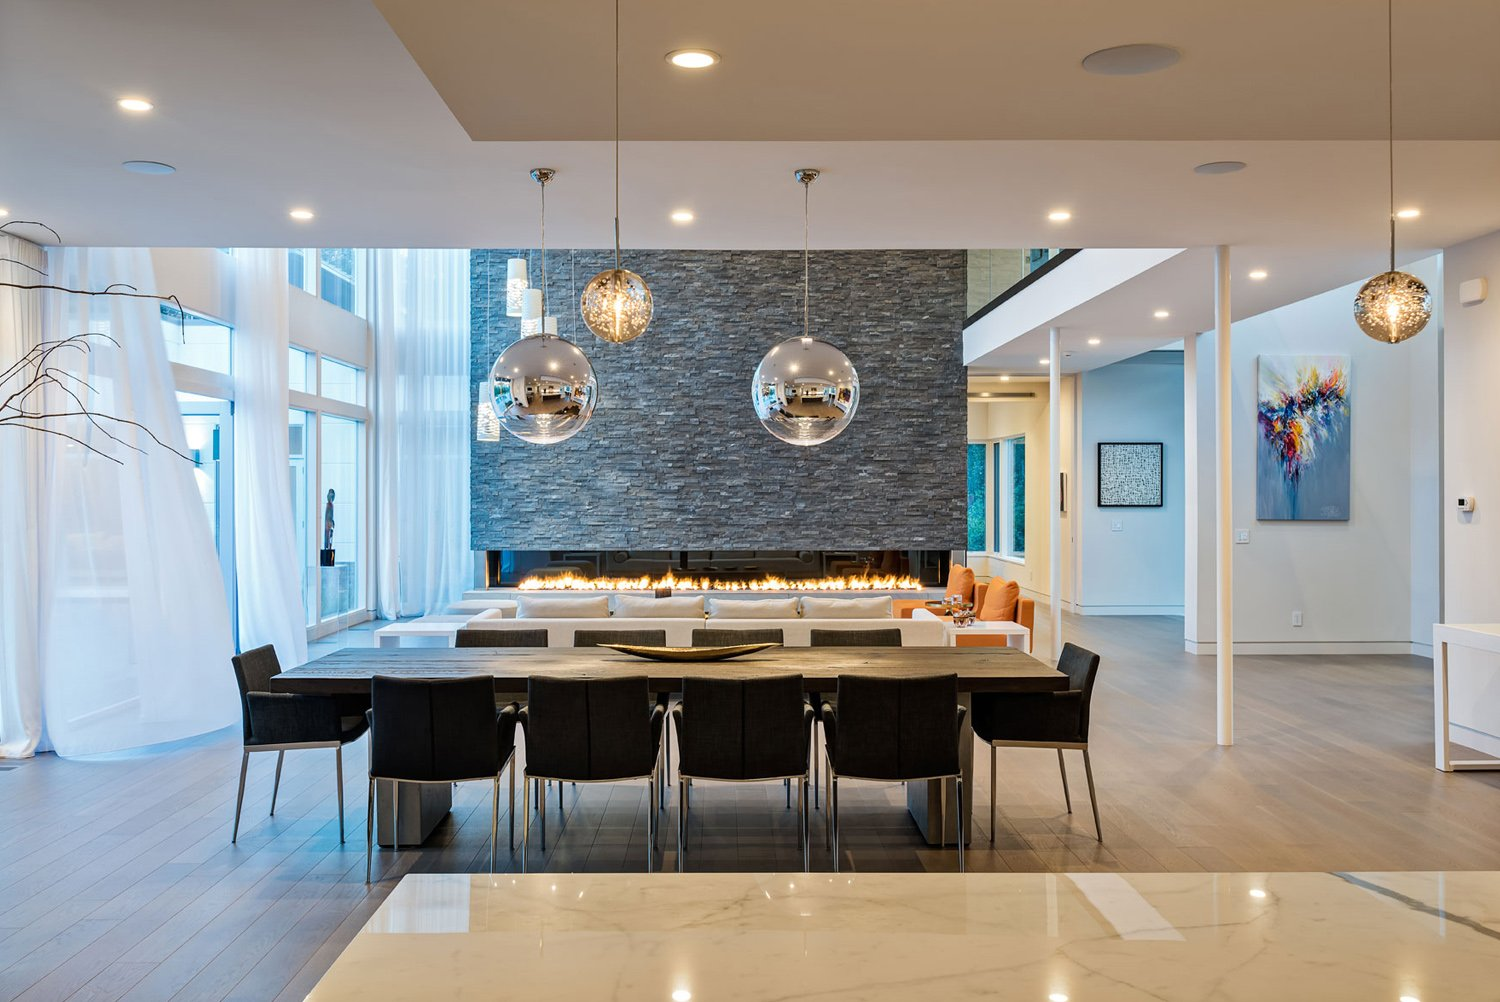 A gathering area at the Bentleyville Residence Christian Phillips Photography